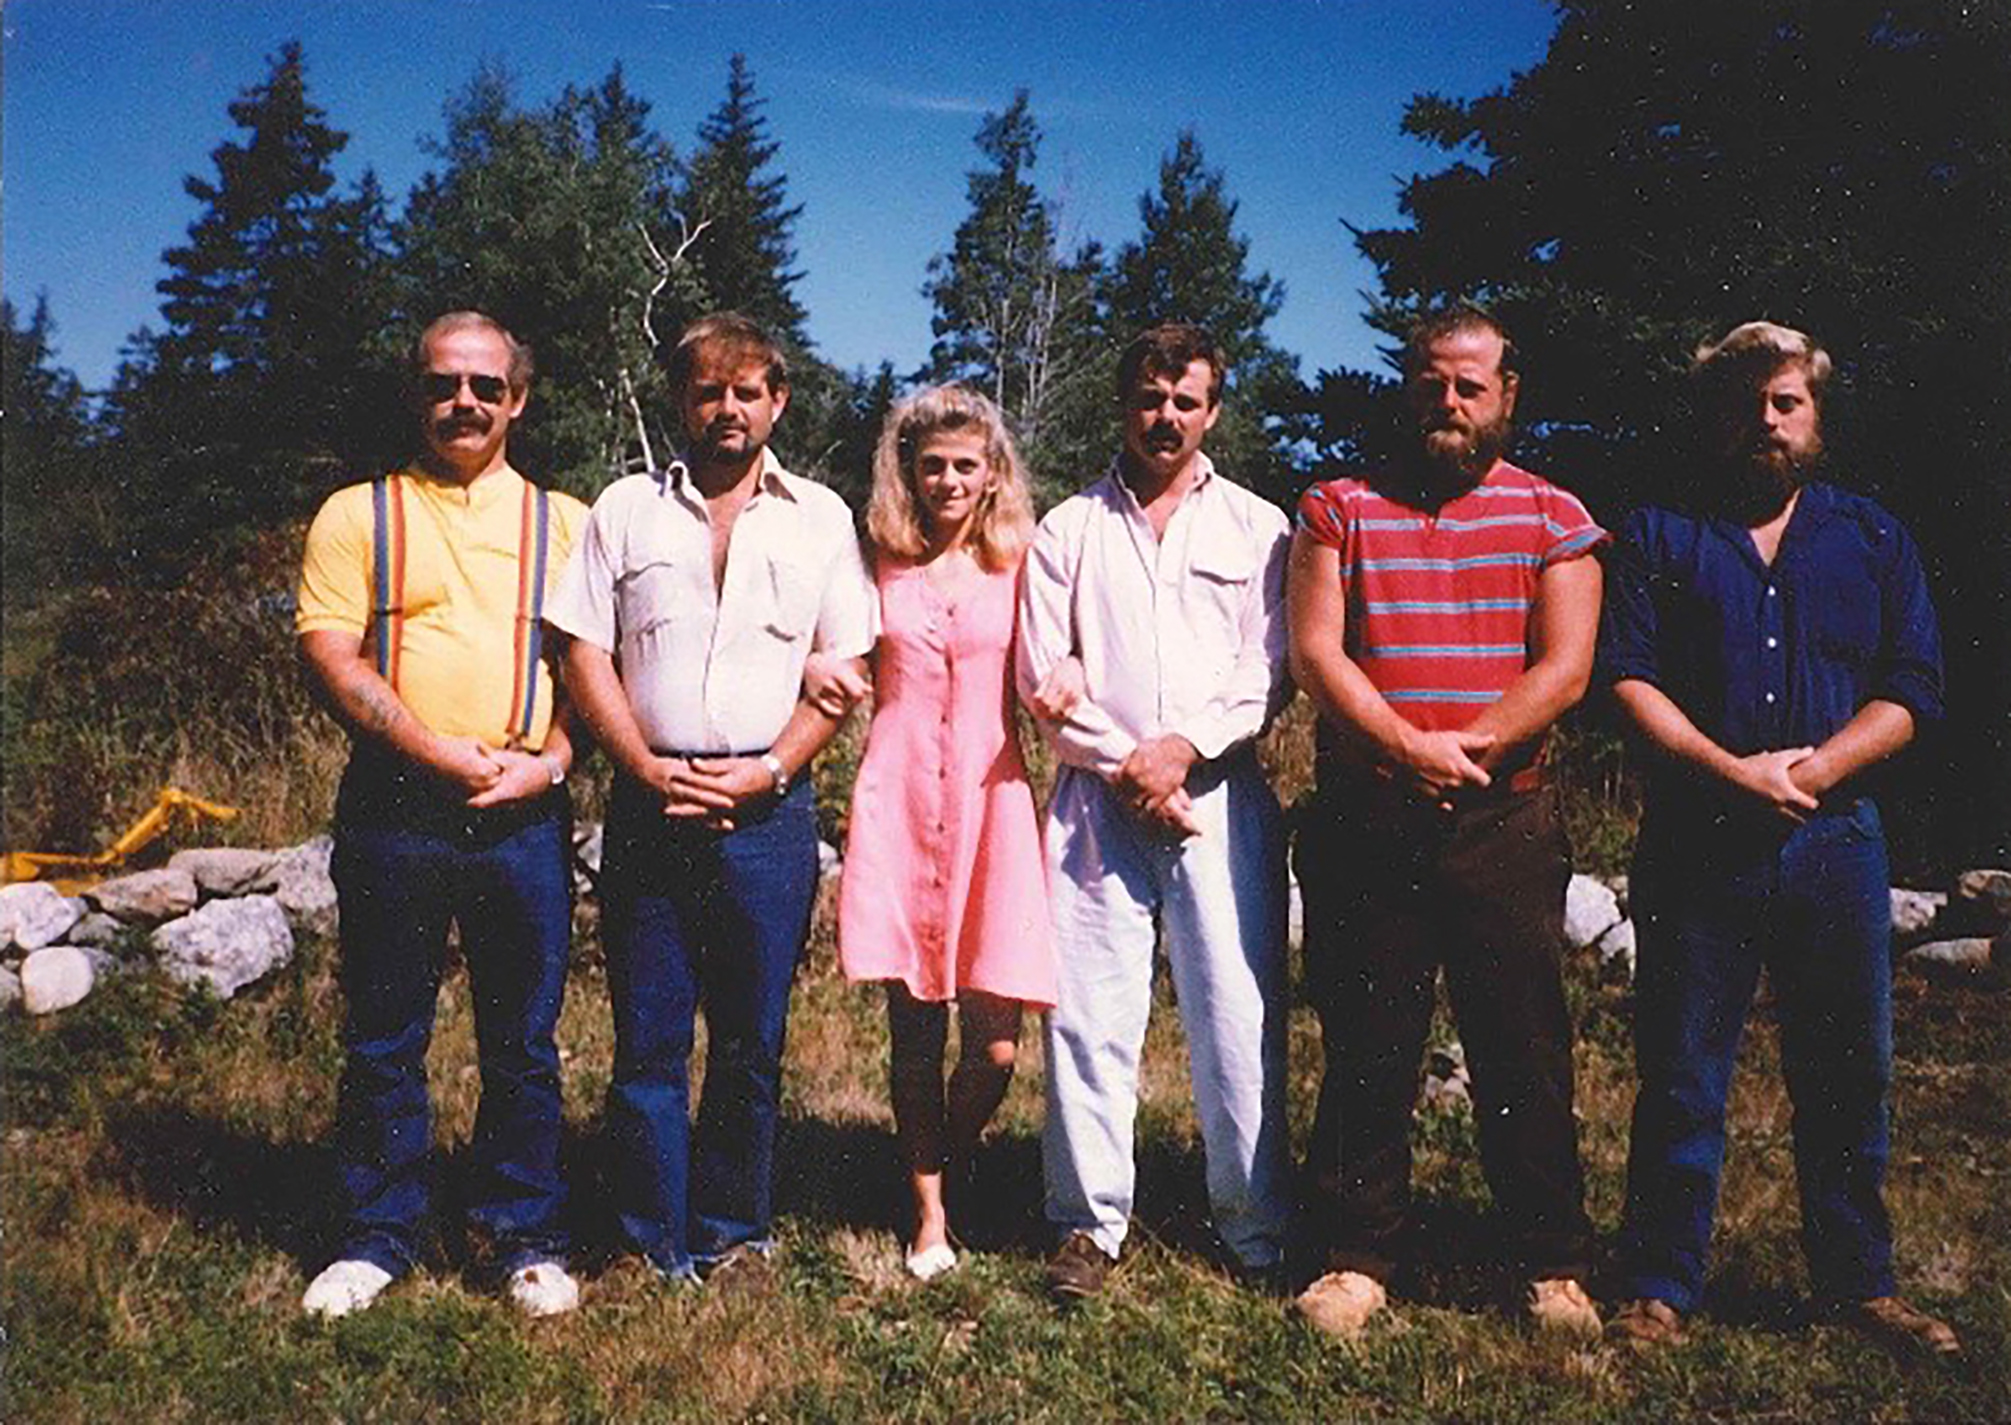 Nancy with her five brothers